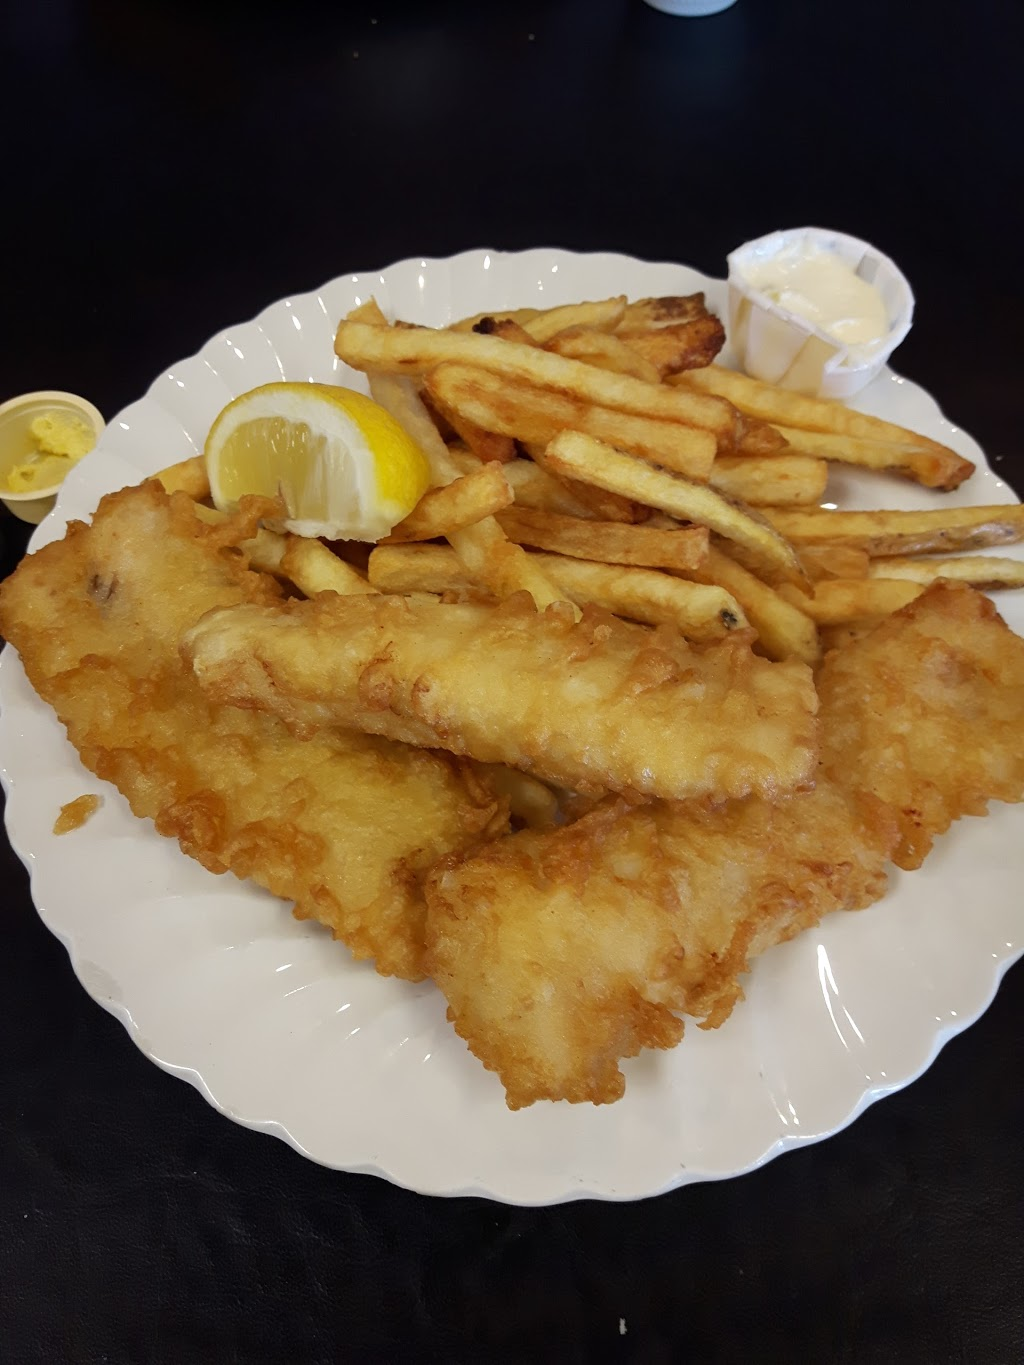 The Original Captain Johns Fish & Chips | restaurant | 125 Mitton St S, Sarnia, ON N7T 5W3, Canada | 5193442525 OR +1 519-344-2525